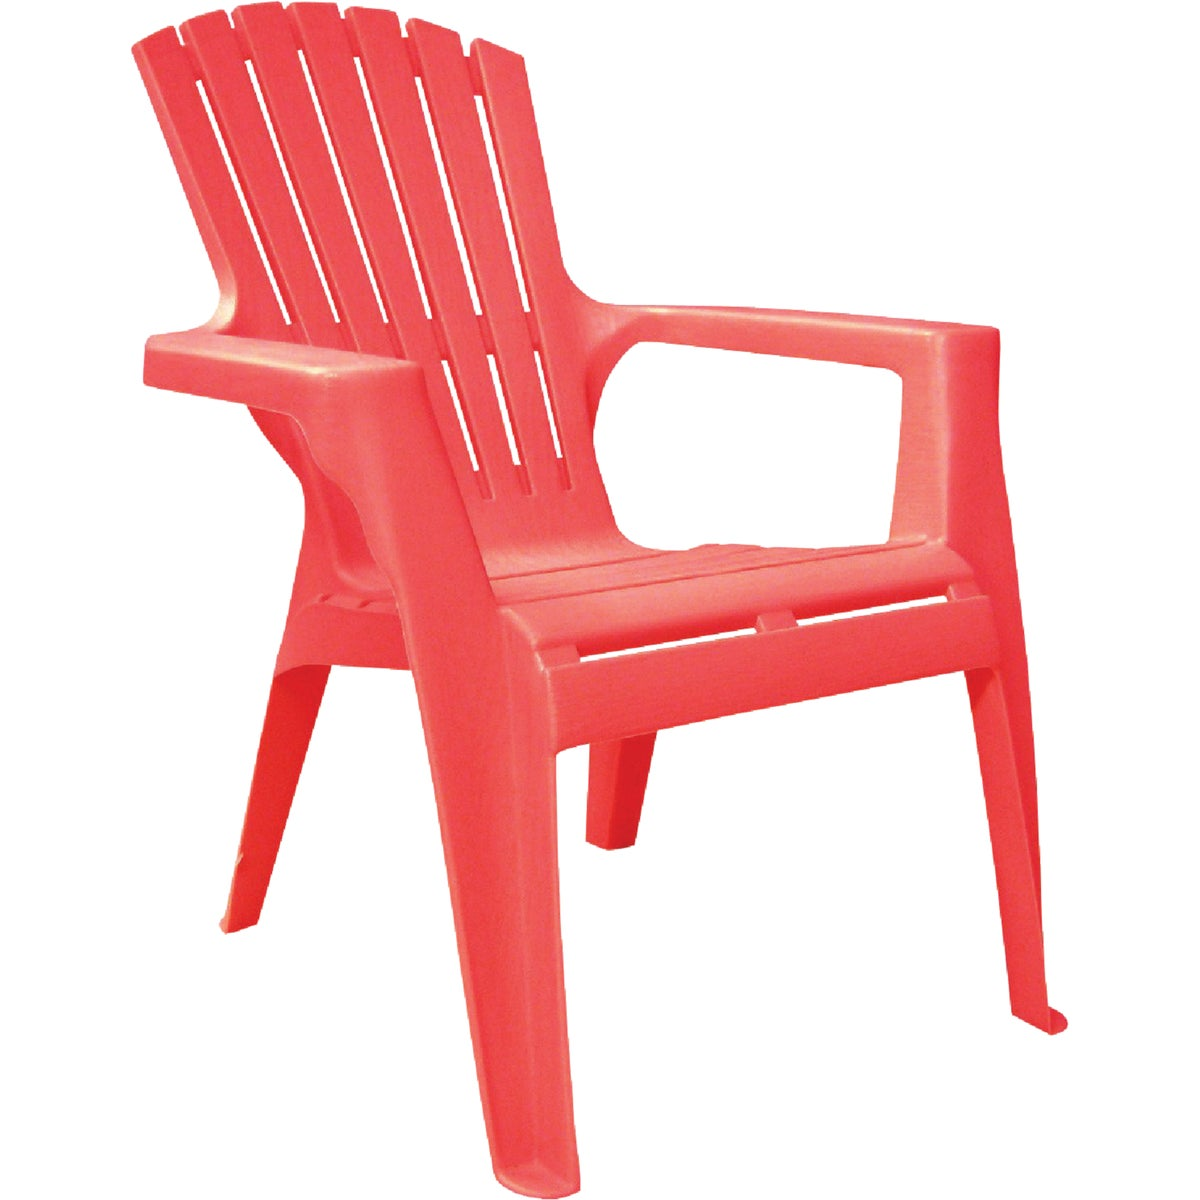 RED KIDS ADIRONDACK - 8460-26-3731 by Adams Mfg Patio Furn